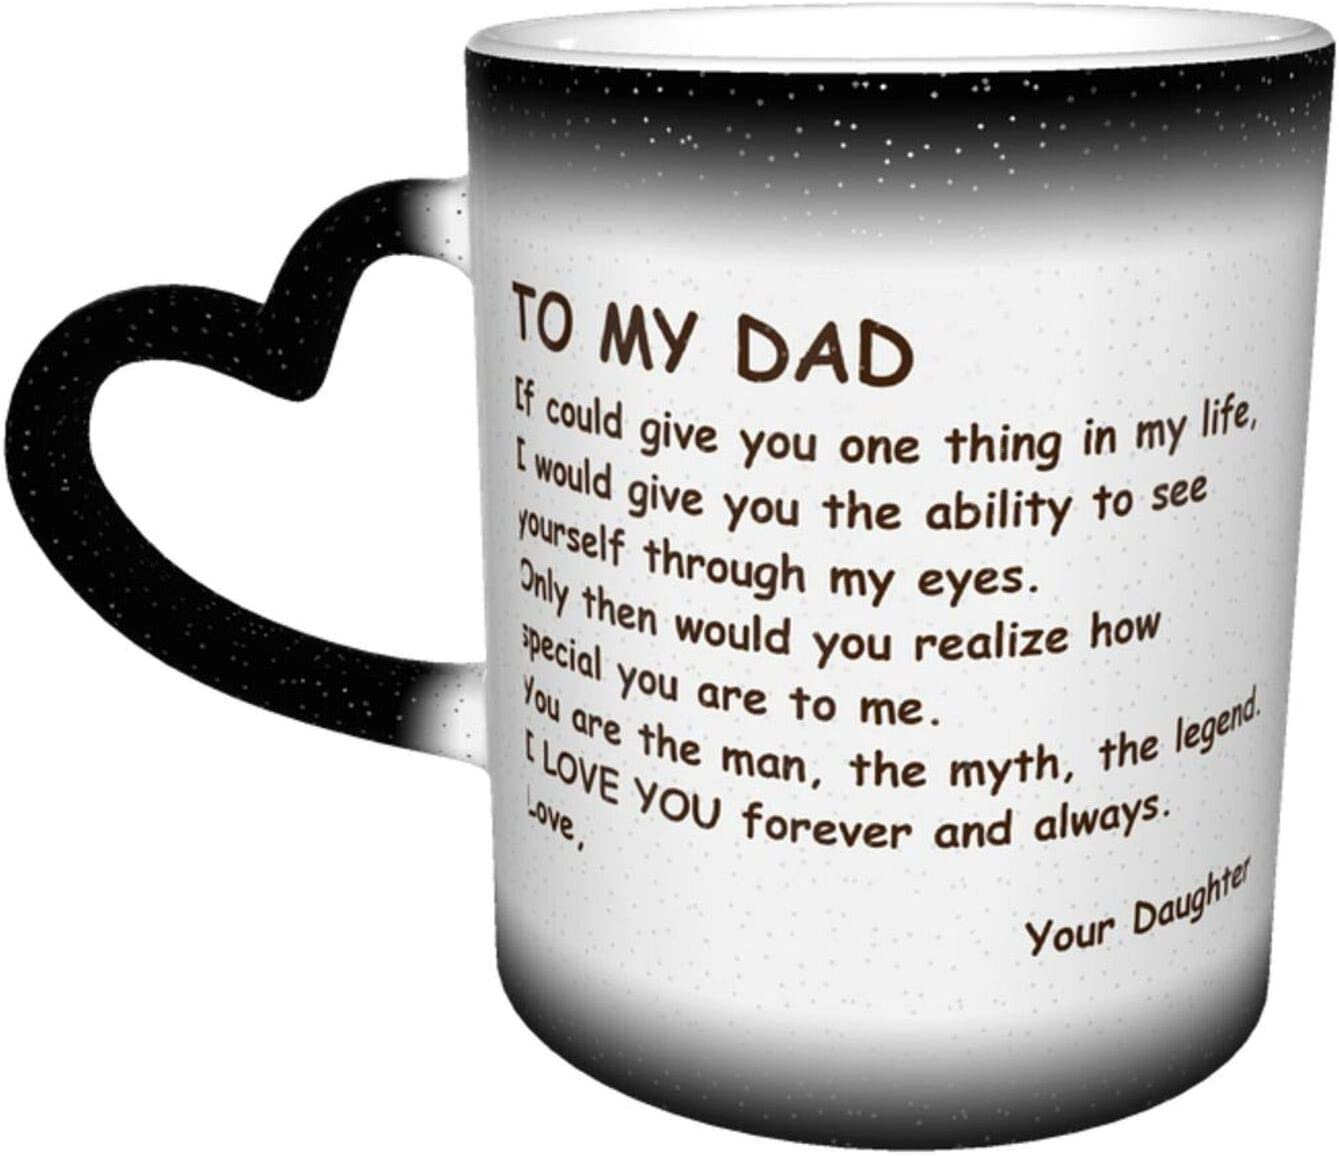 BLUBLU Heat Sensitive Color Changing Mug 11oz Funny Ceramic Coffee Cup Gift for Father Friend - To Dad From Daughter